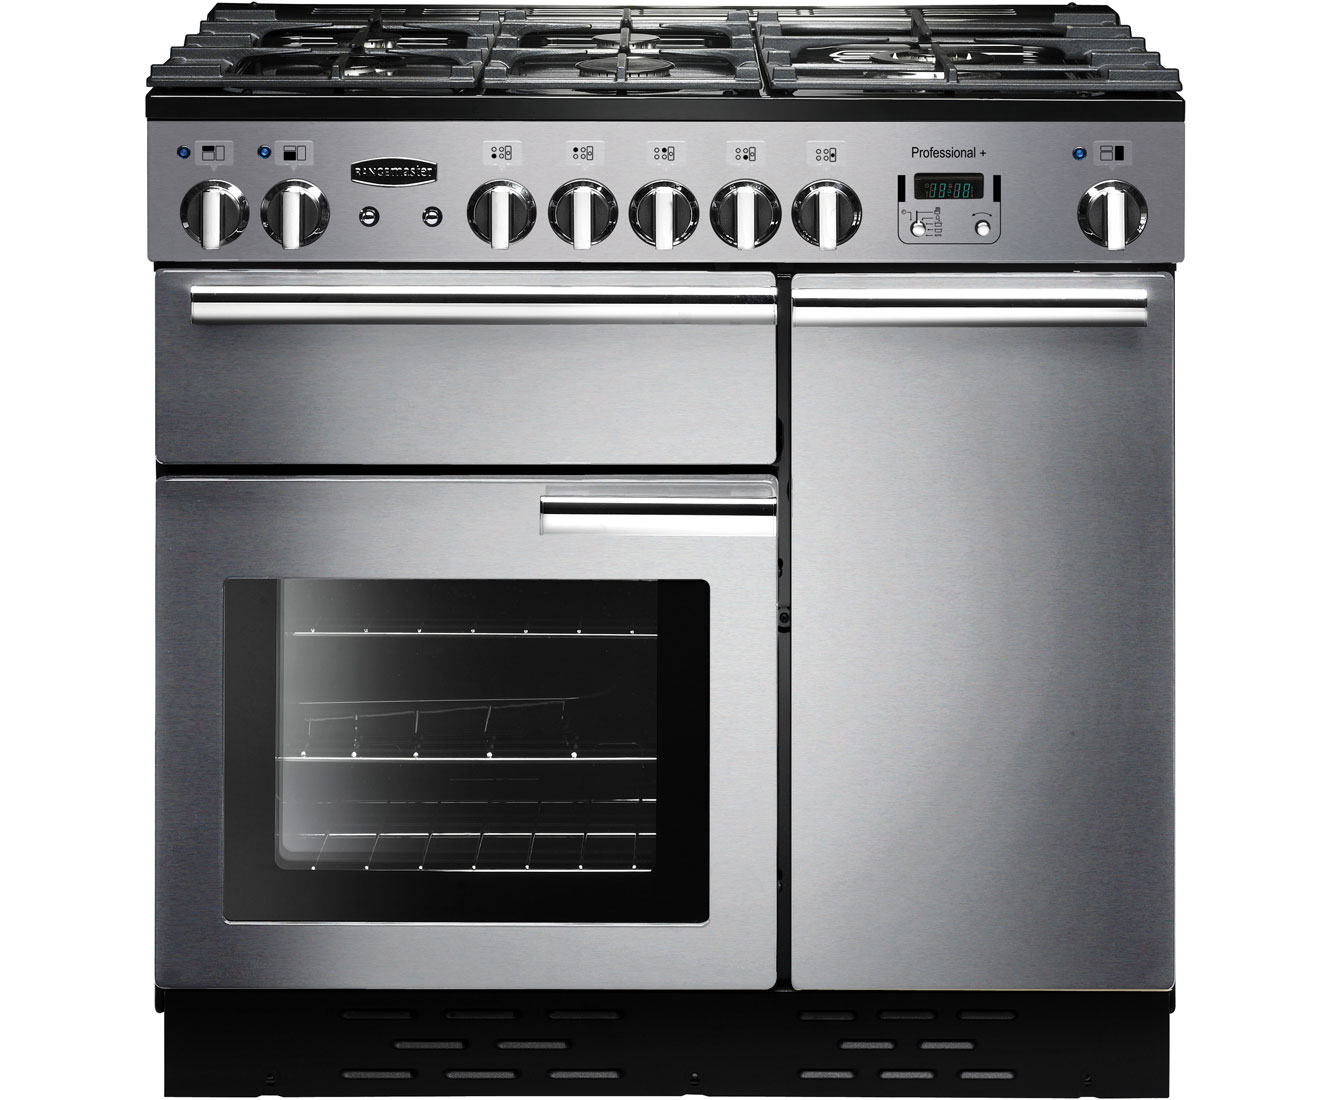 Electric Range Cookers ~ Rangemaster prop ngfss c professional plus cm gas range